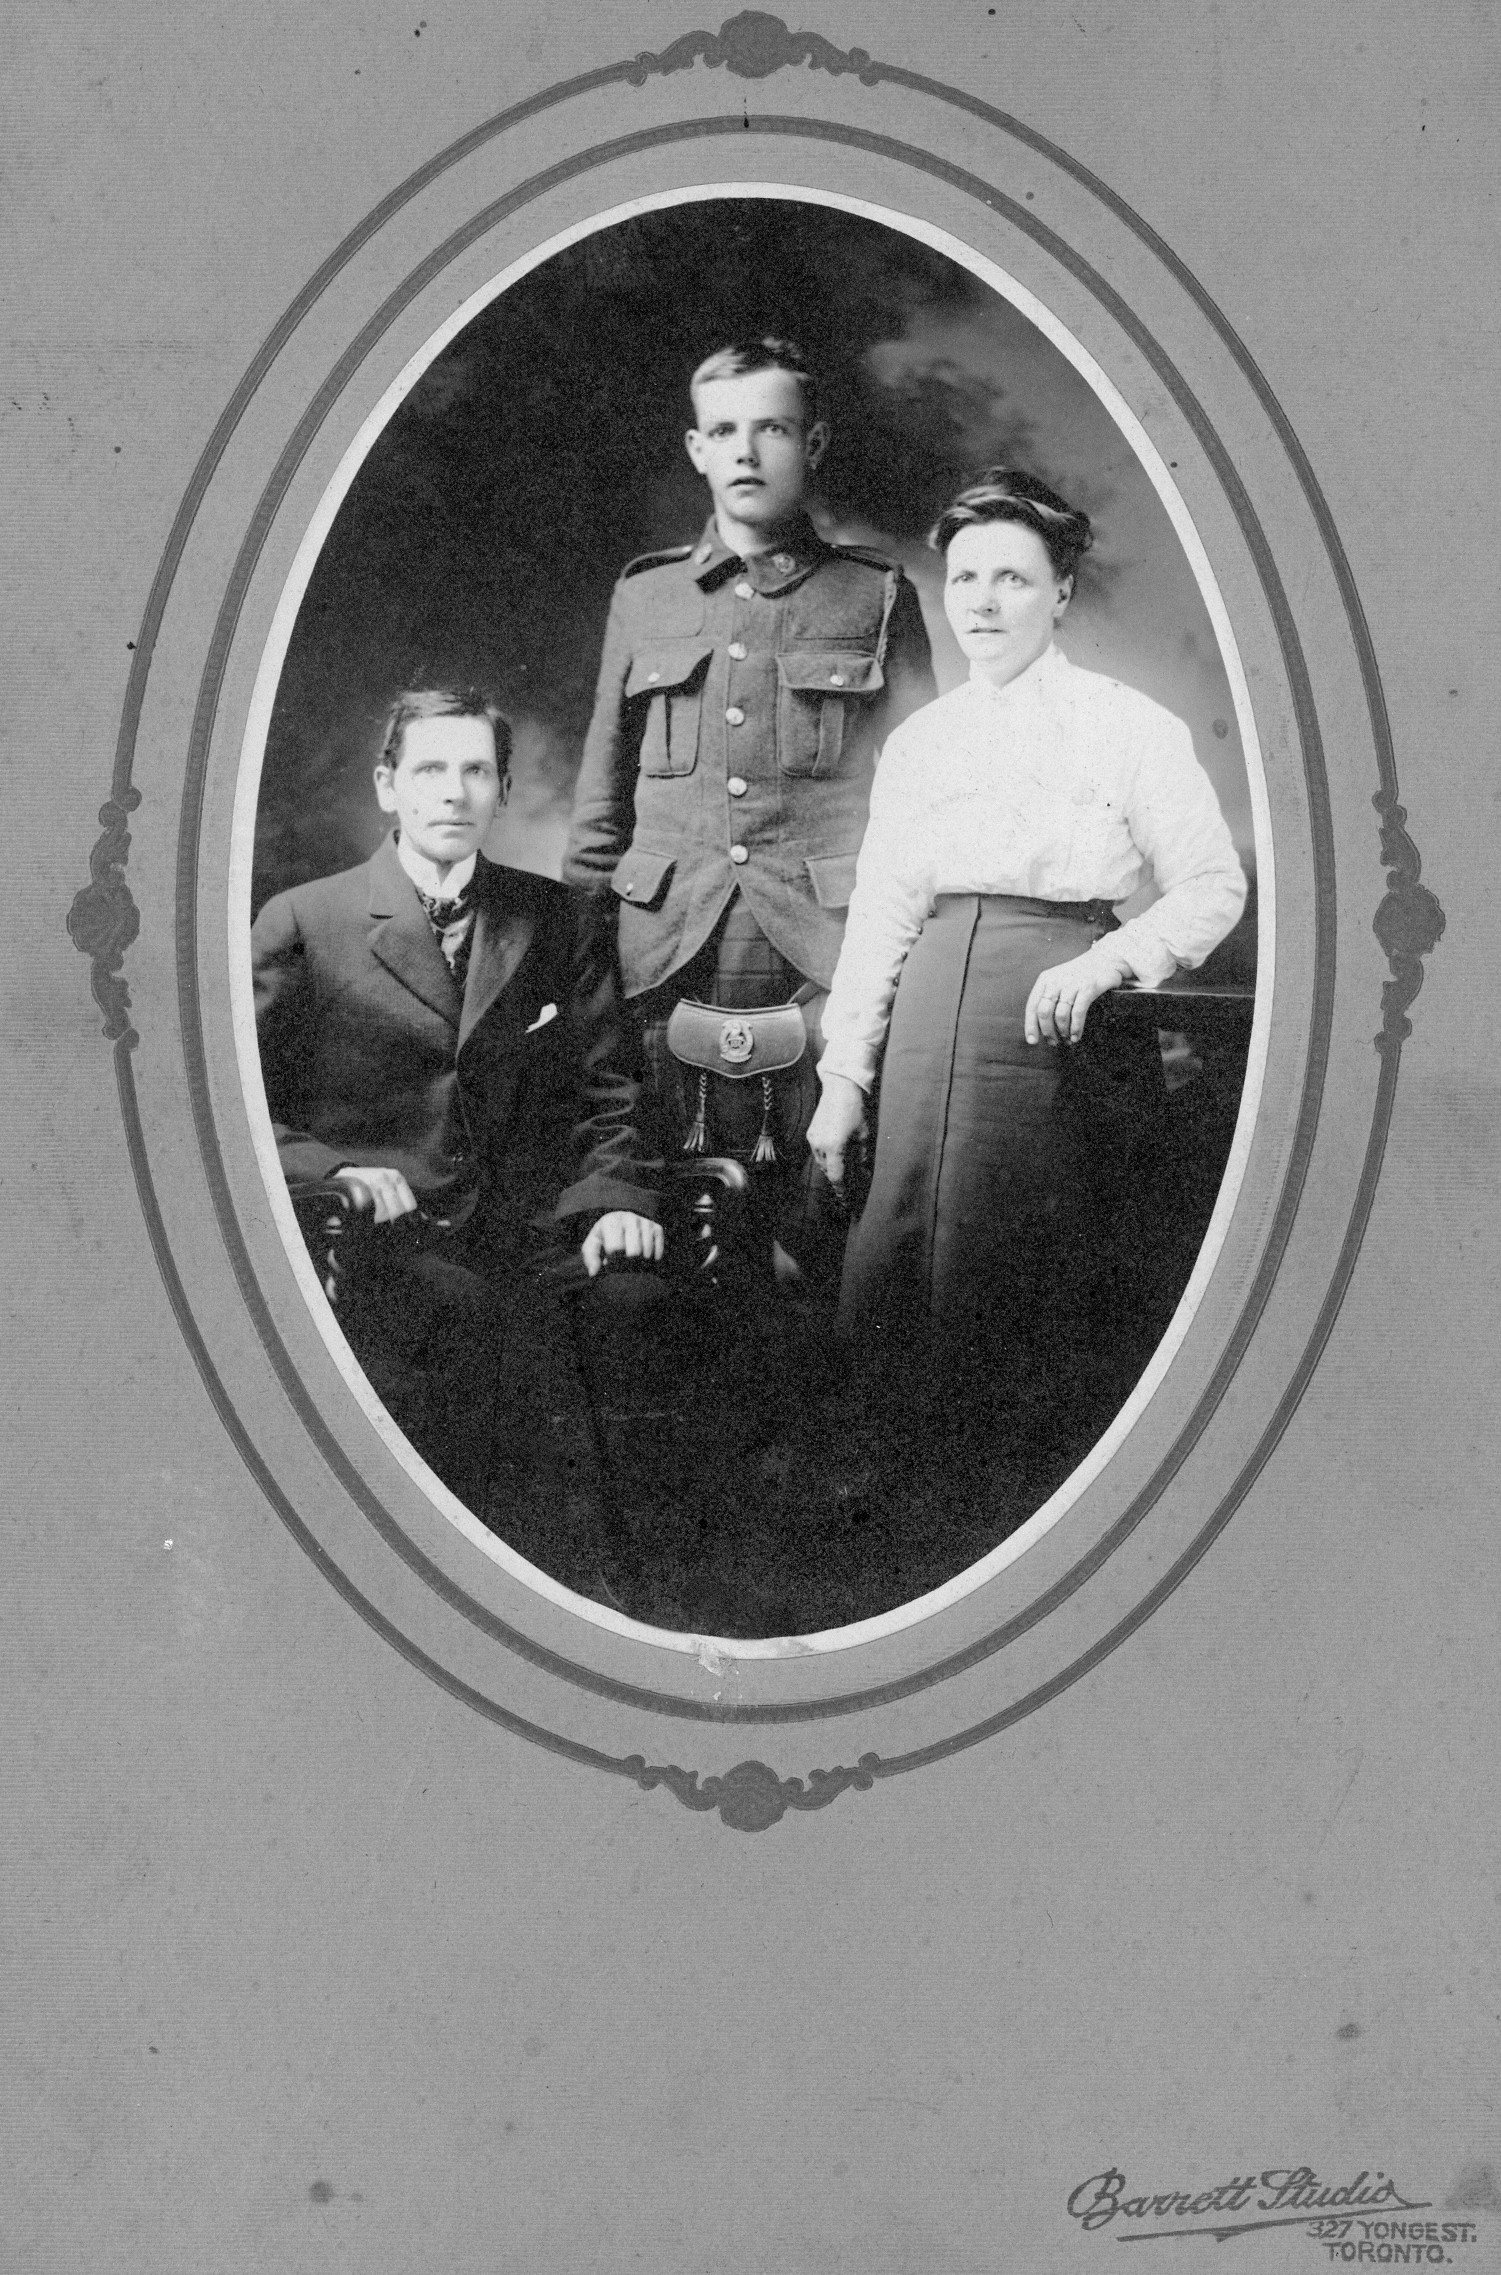 Family Photo– 799098 Pte John Owens ( with parents) originally 134th Battalion (48th Highlanders); transferred to the 15th Battalion (48th Highlanders) No. 1 Company and KIA at Vimy on 9 April 1917.  (right) 